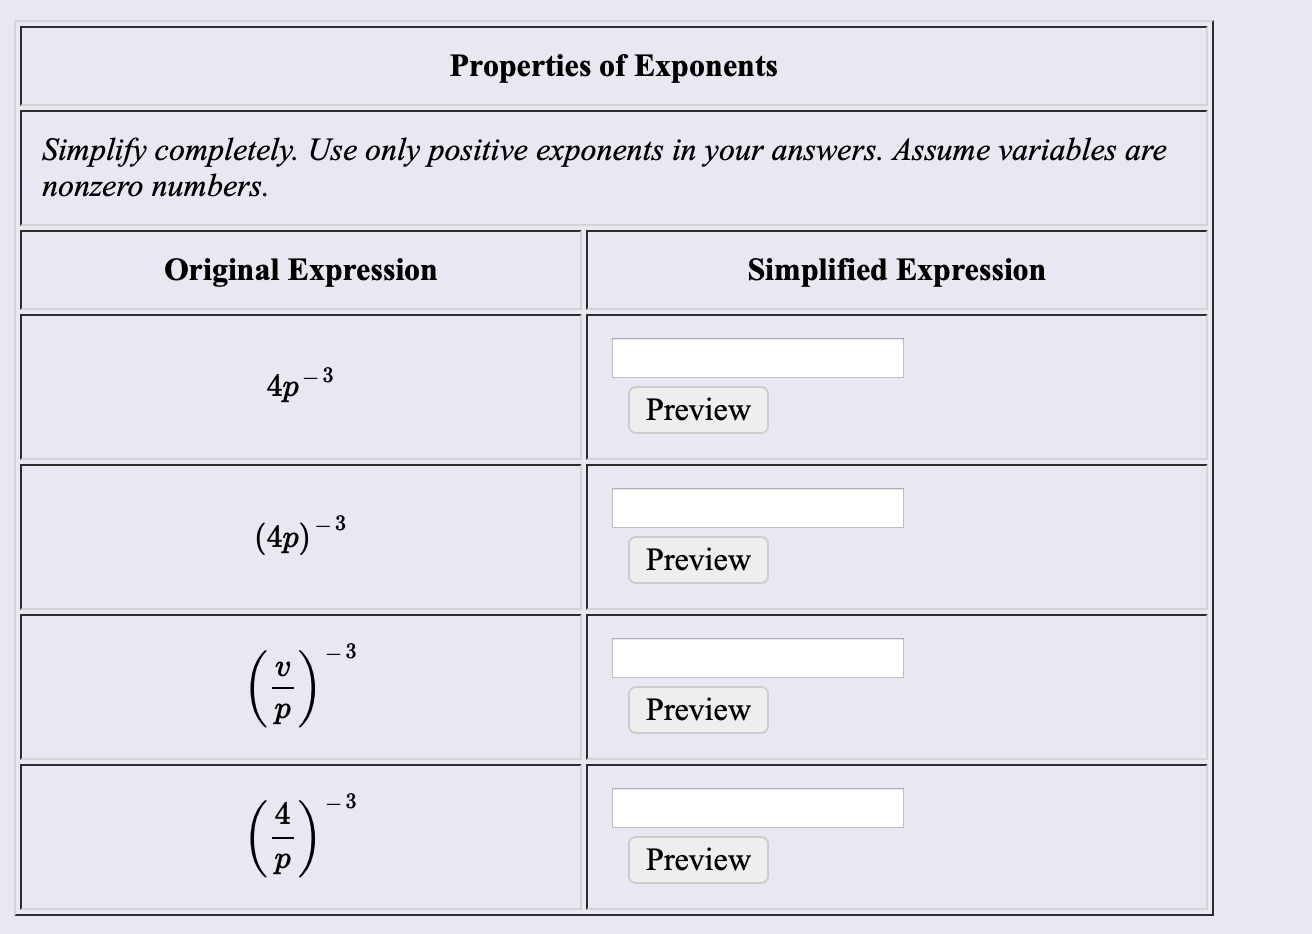 "Properties of Exponents Simplify completely. Use only positive exponents in your answers. Assume variables are поnzero nunтbers. Original Expression Simplified Expression 4p 3 Preview (4p)-3 Preview (;)"" Preview (3 Preview"